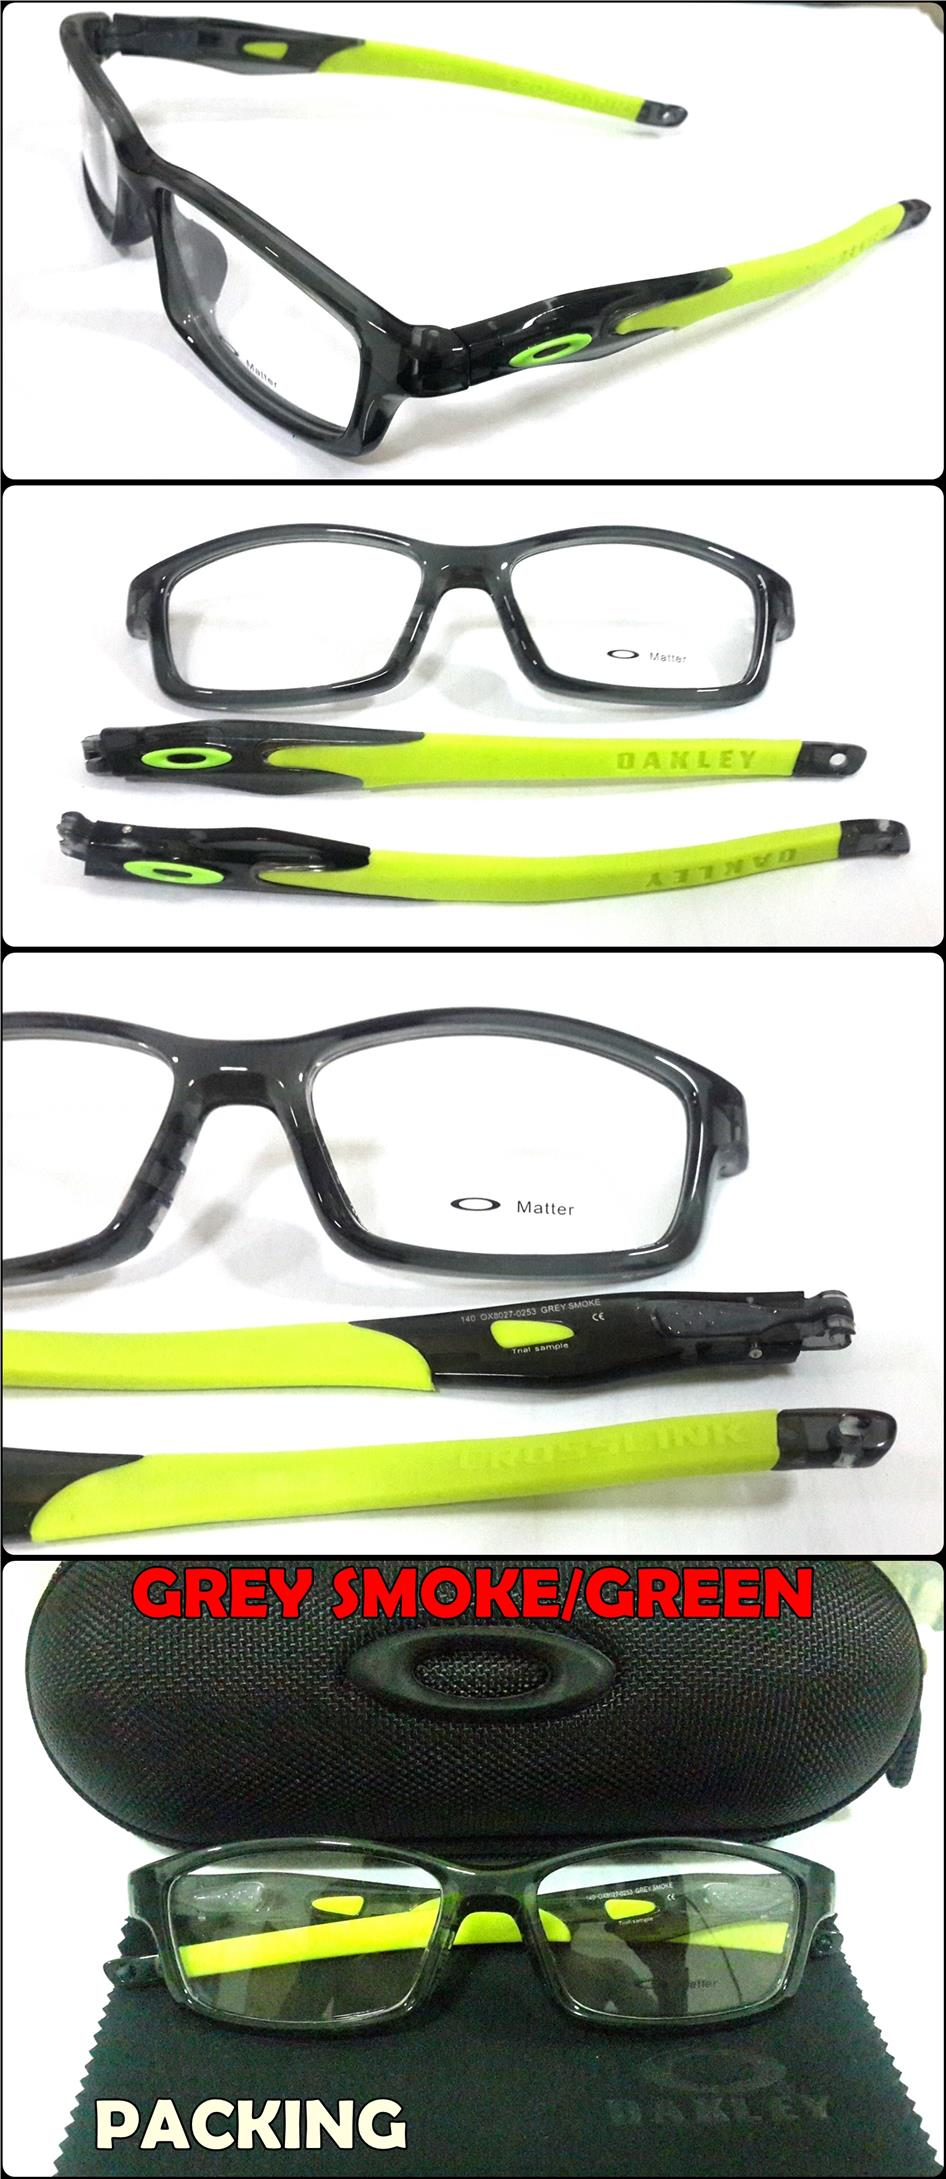 Oakley Eyeglasses For Men Btnc